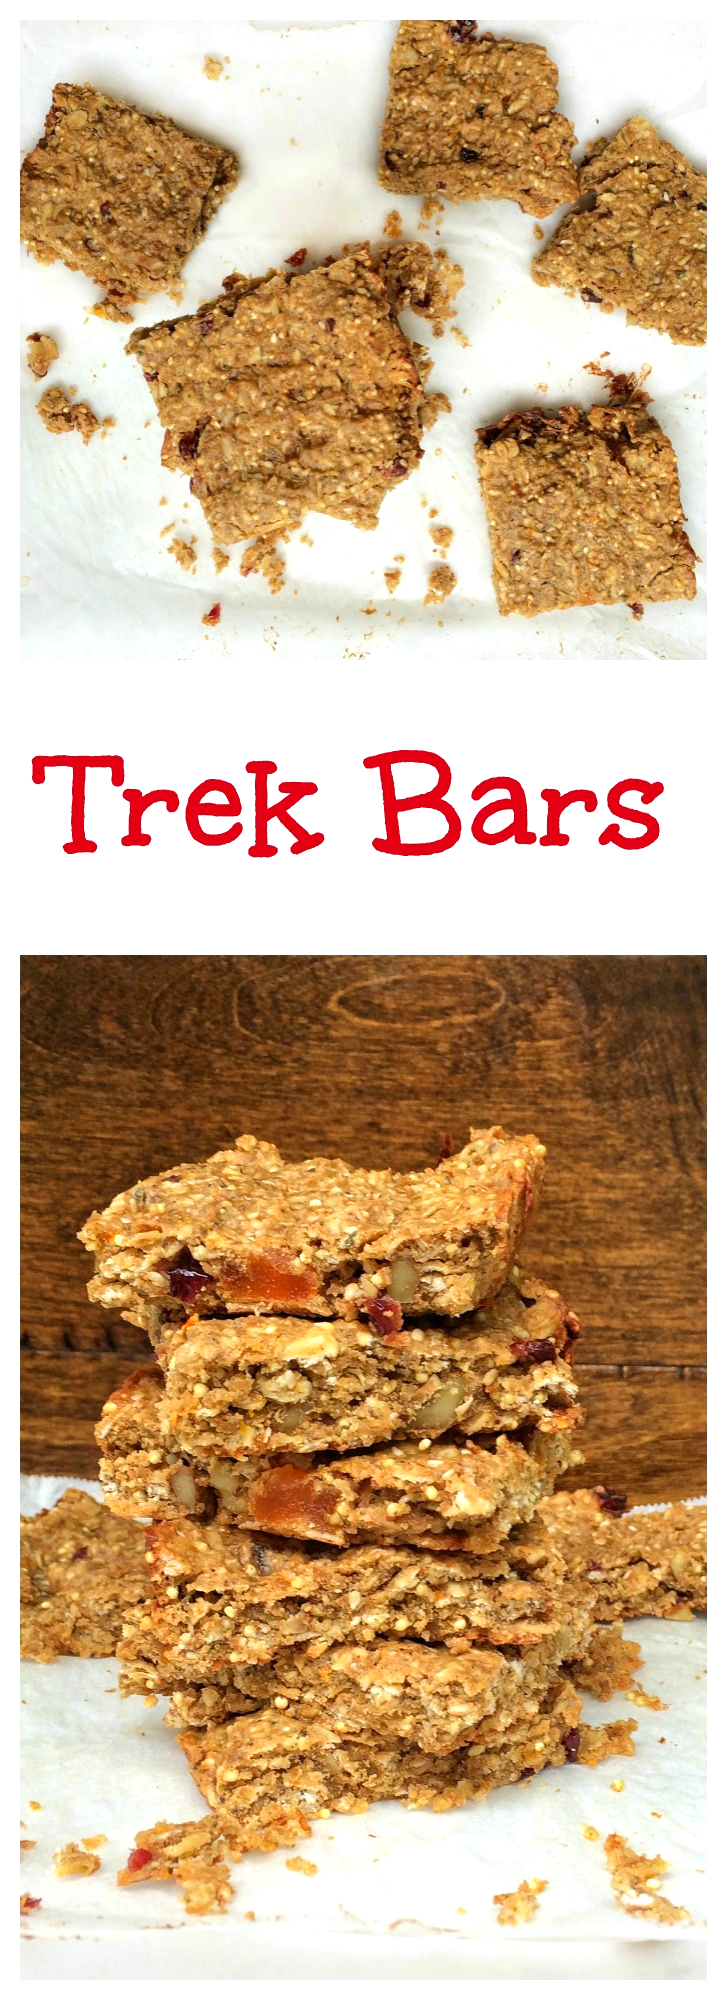 Trek Bars-homemade granola bars recipe. These bars have peanut butter, honey, oats, protein powder, and TONS of mix-ins!